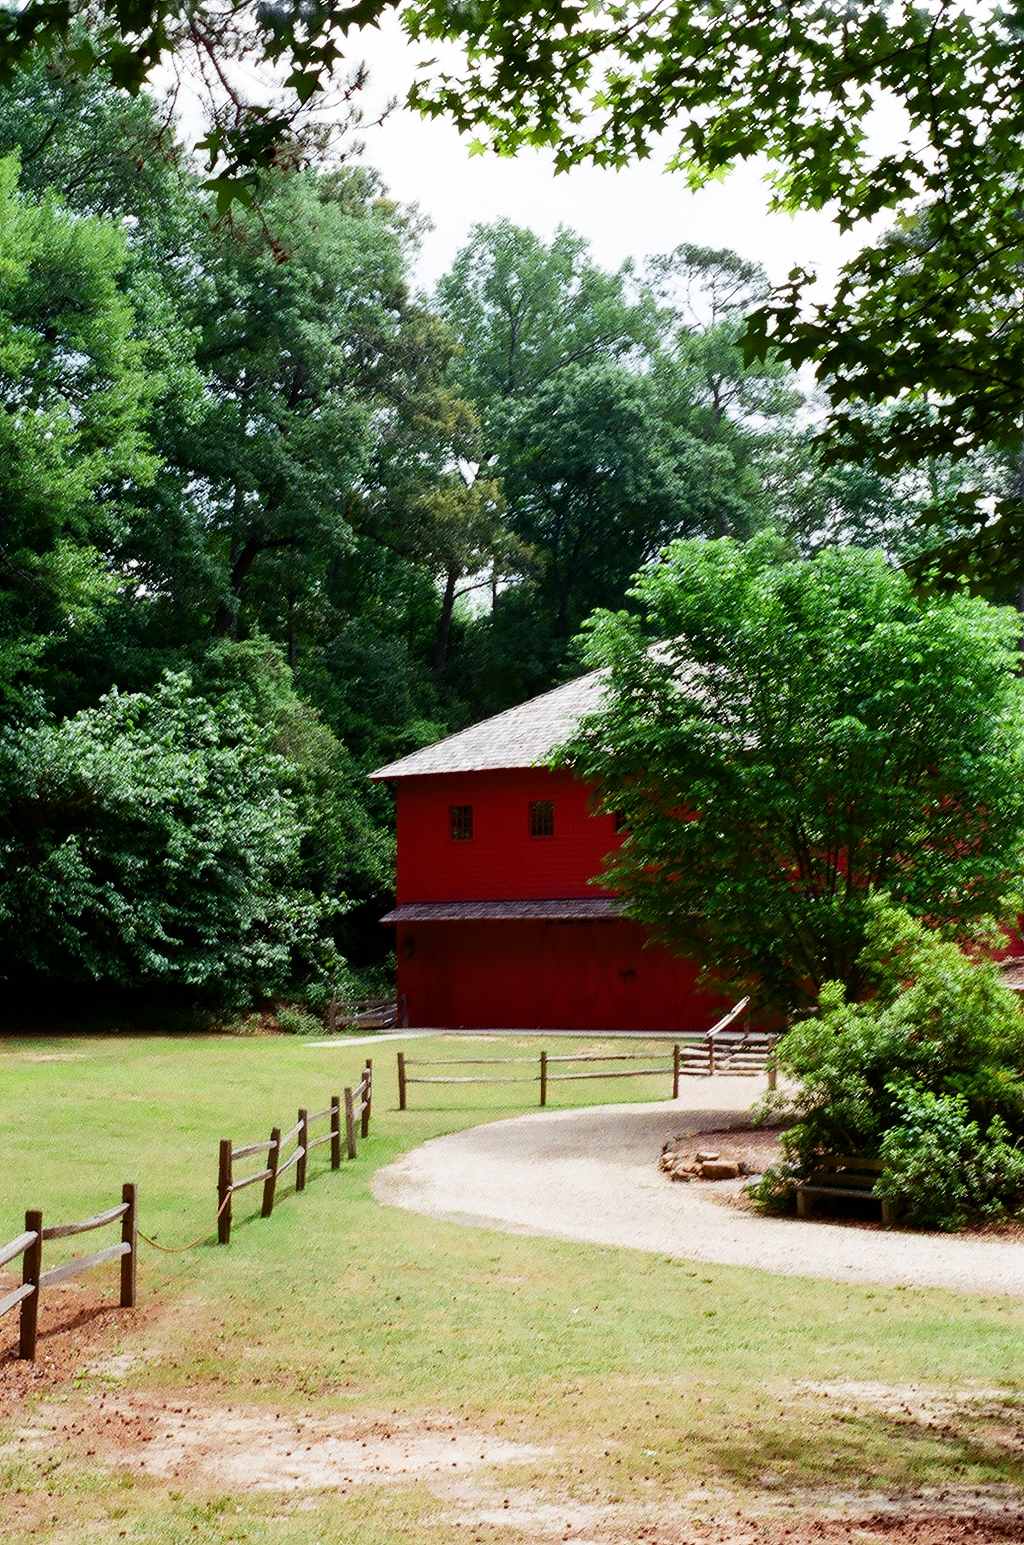 The Barn at the Living History Park in North Augusta, SC